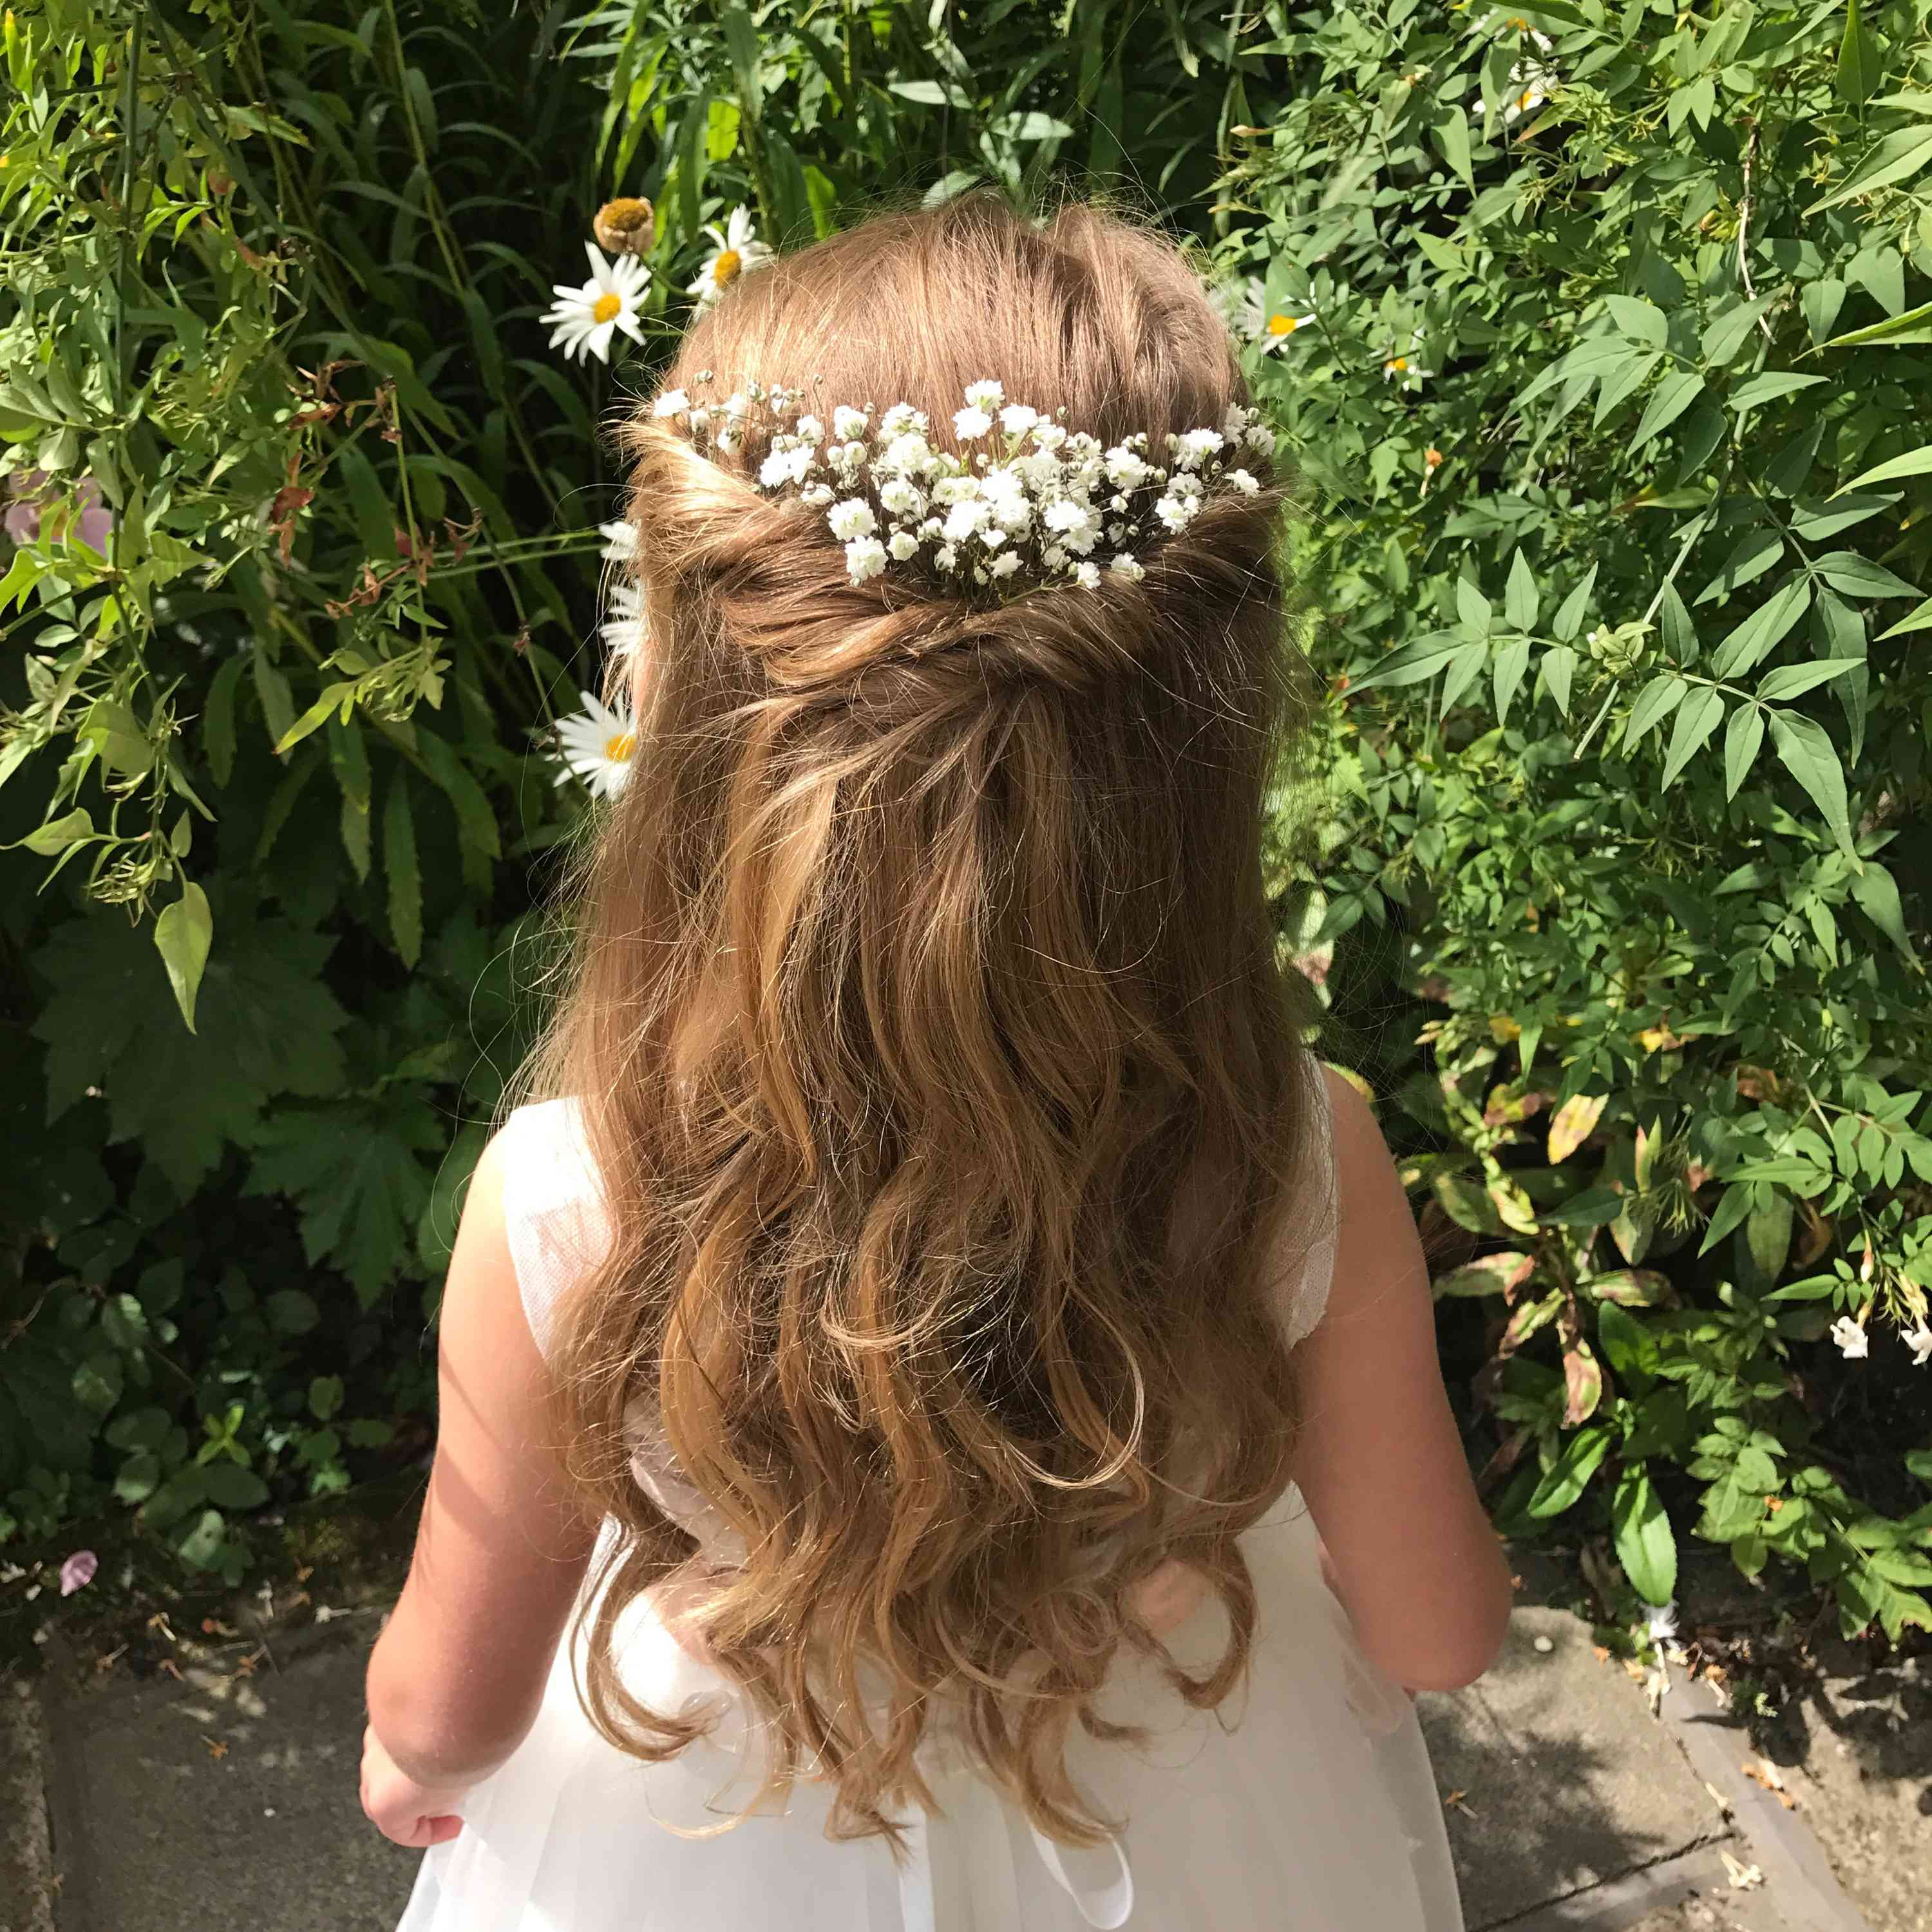 Need Bridal Hair Inspiration We Have You Covered: 6 Adorable Flower Girl Hairstyles